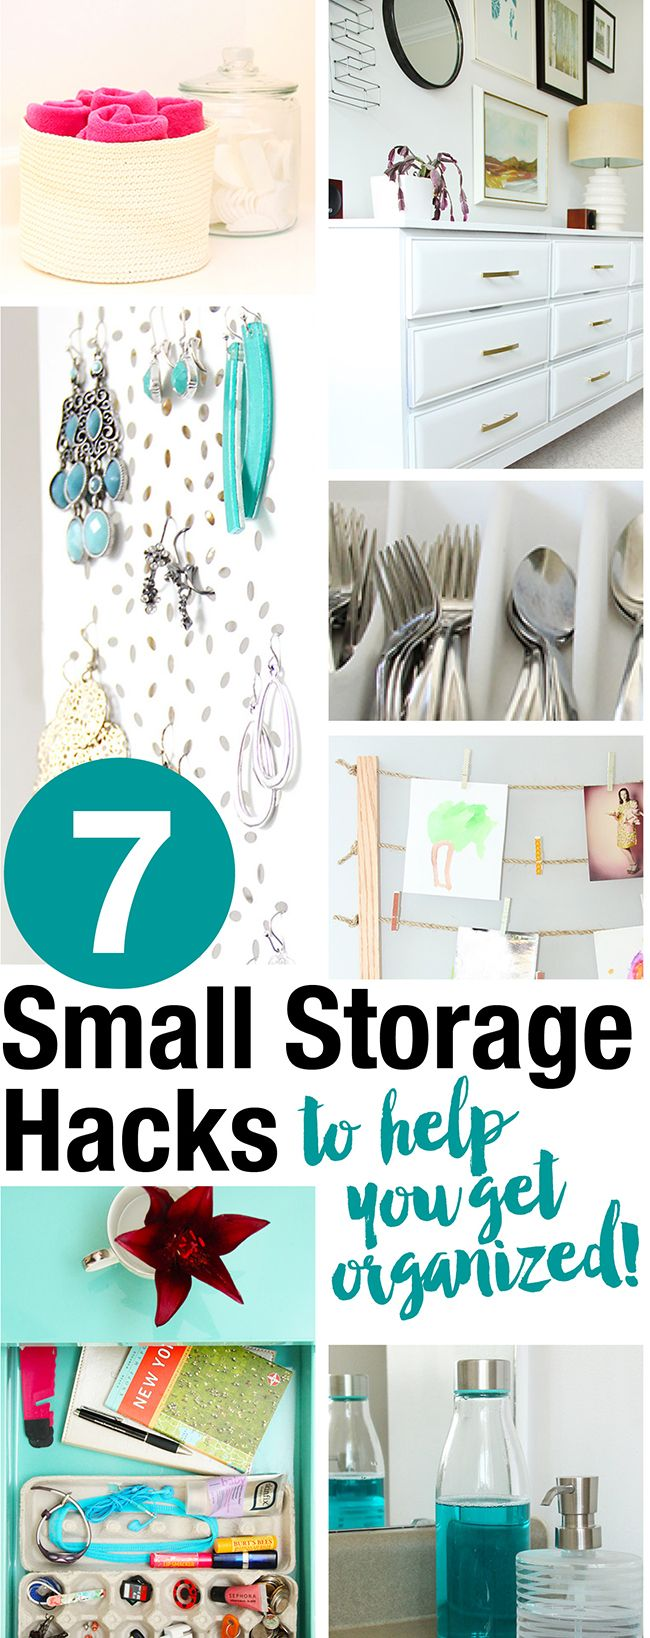 7 Small Storage and Organizing Hacks to help you get organized everywhere from your cutlery drawer to the family washroom!